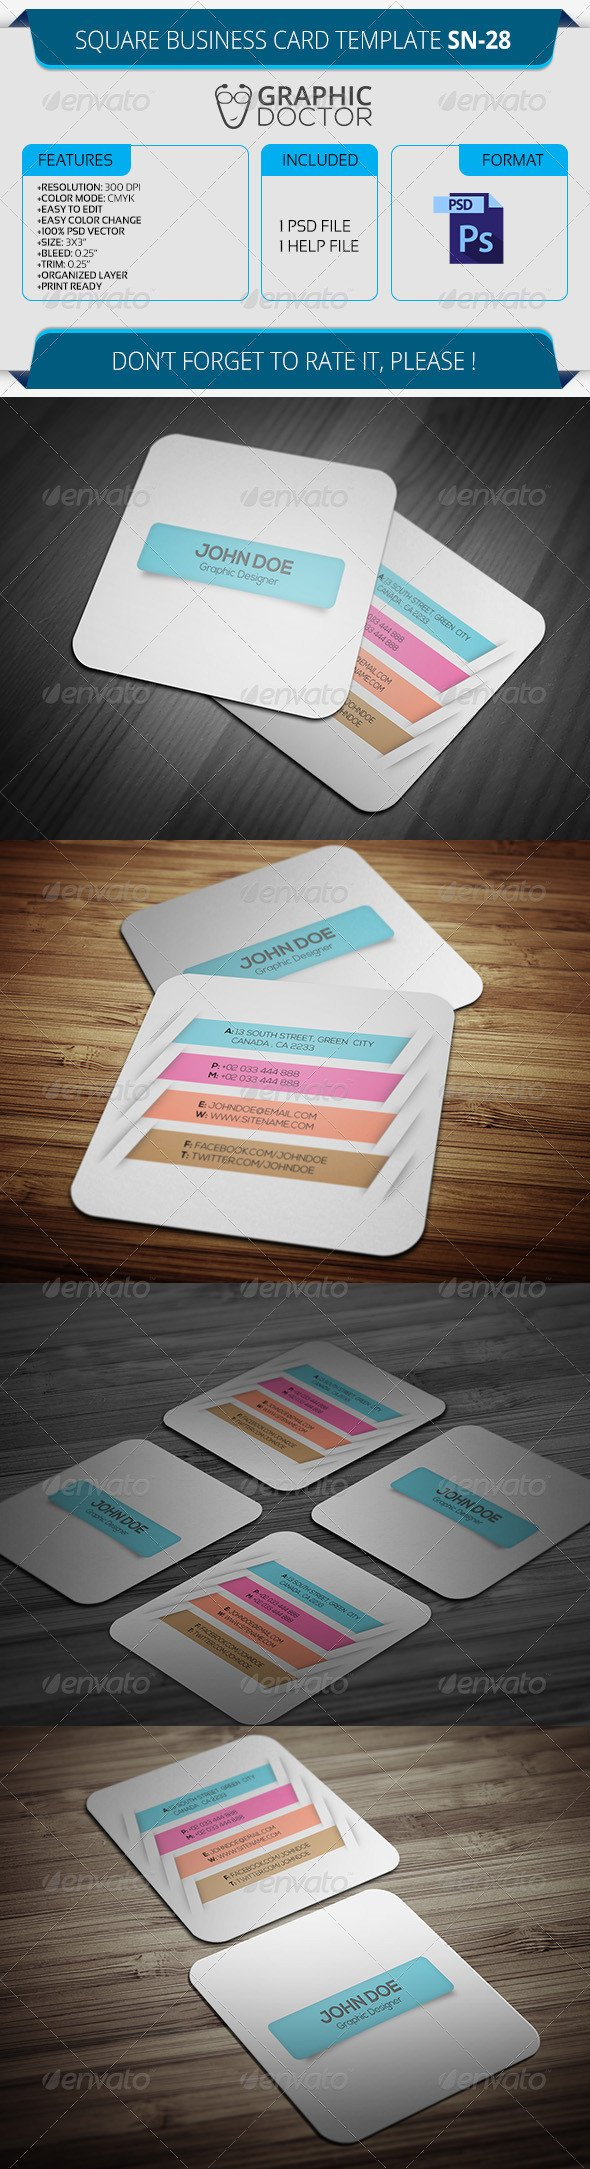 Square Business Card Template Square Business Card Template Sn 28 by Graphicdoctor